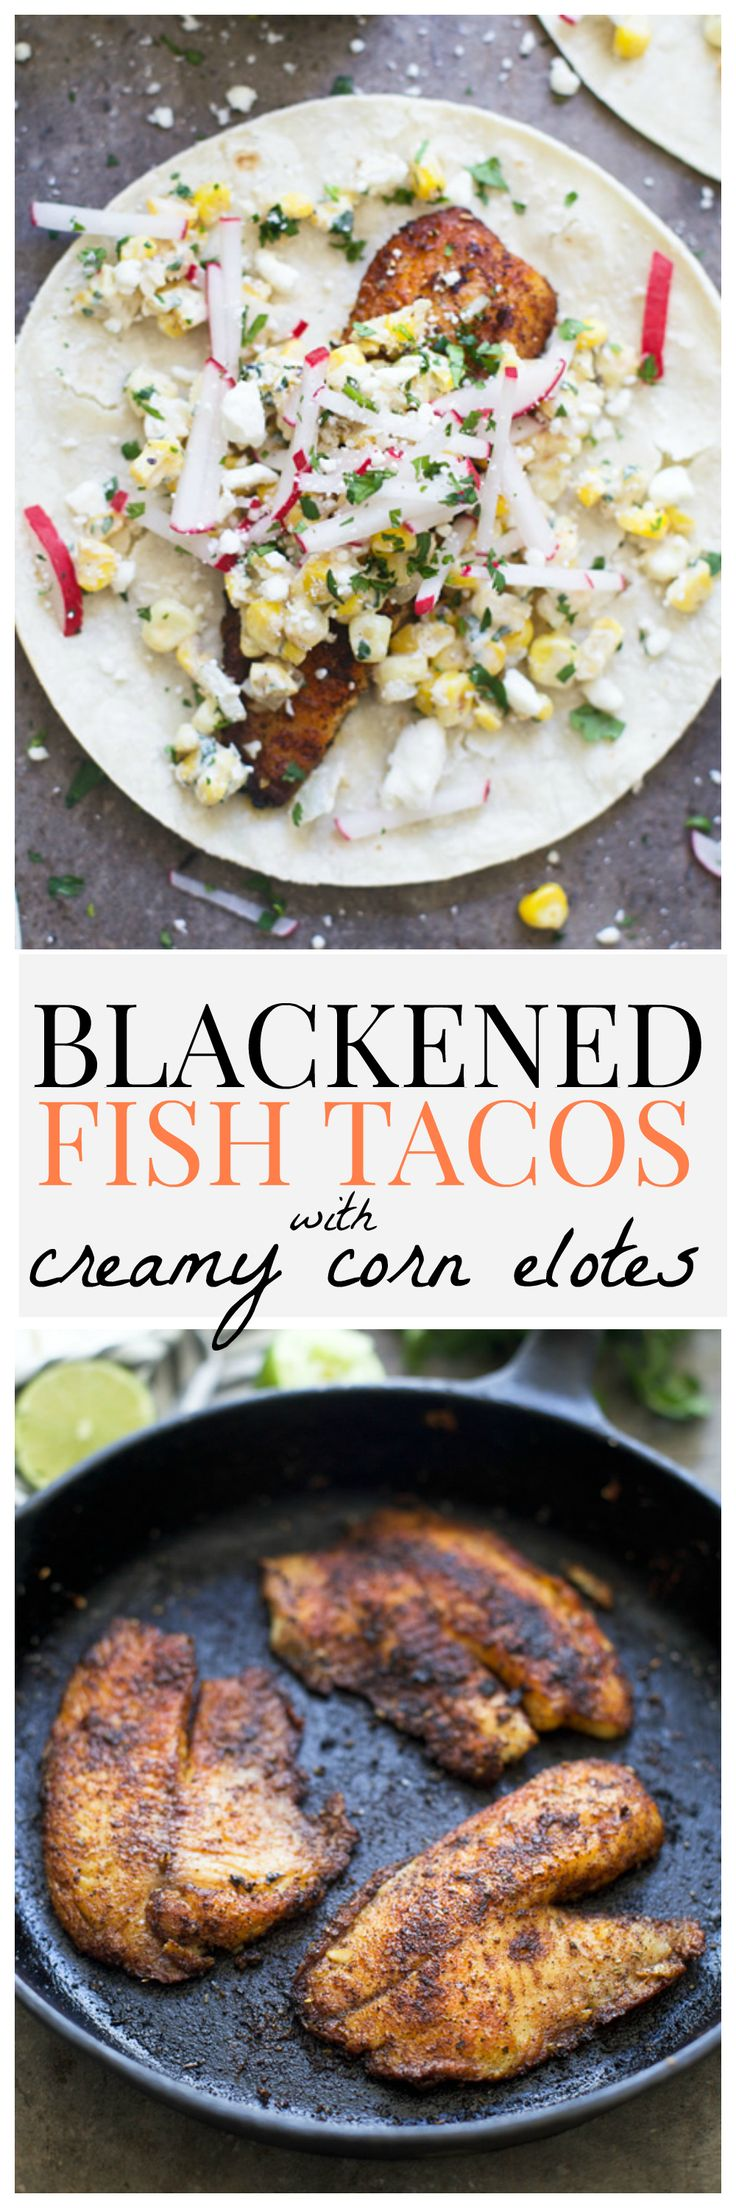 With Cinco de Mayo only a week away, it's time to start thinking about what you're going to eat! These Blackened Tilapia Tacos with Corn Elotes are easy, healthy and the perfect addition to your menu! Like a majority of the country, my love for Mexican food knows no bounds, and it's definitely reflected here [...]